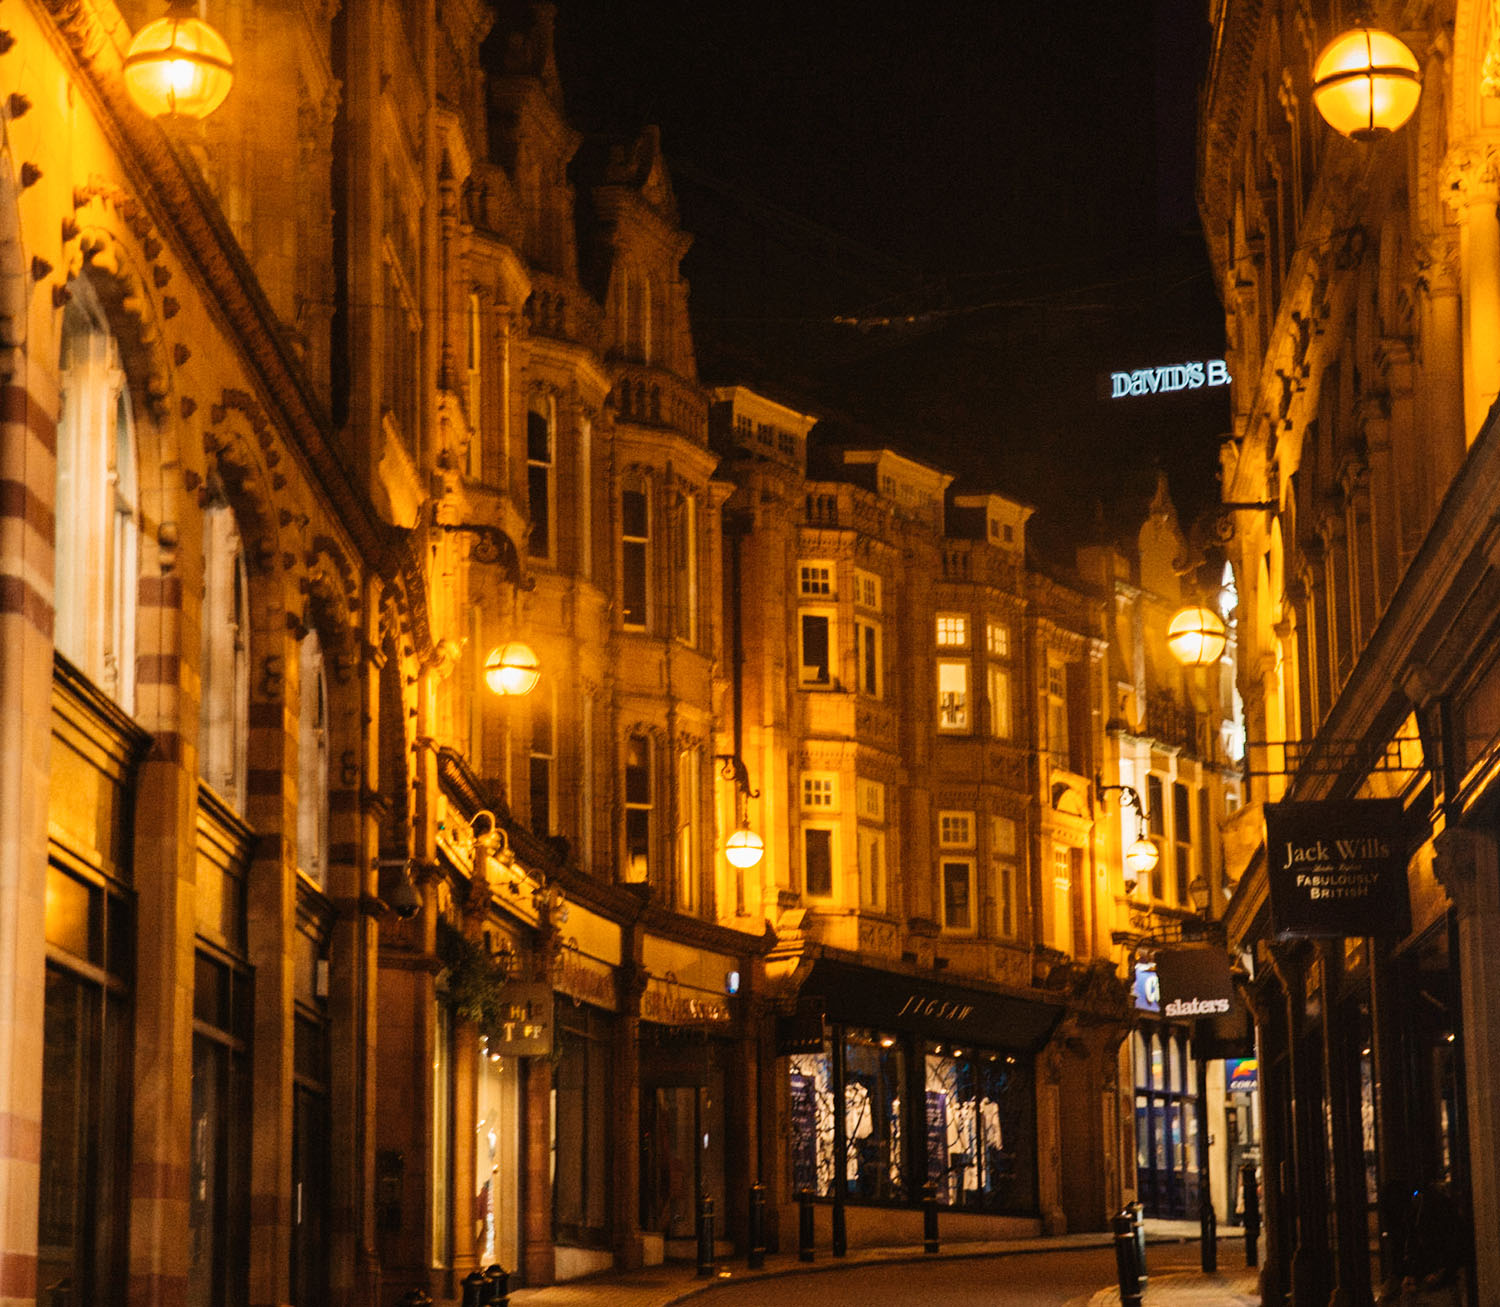 Cozy night street in Birmingham